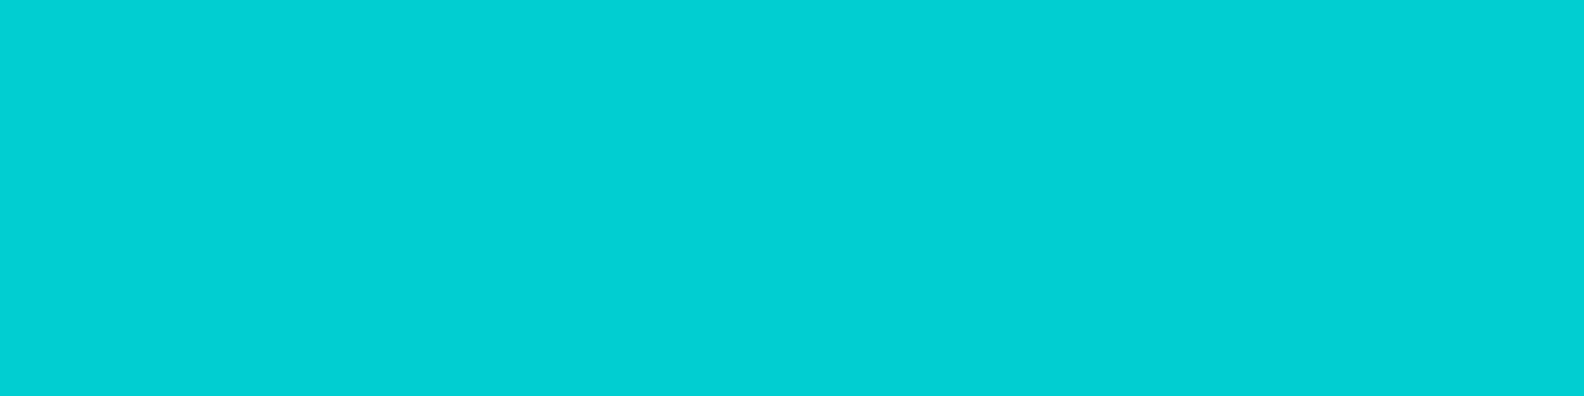 1584x396 Dark Turquoise Solid Color Background